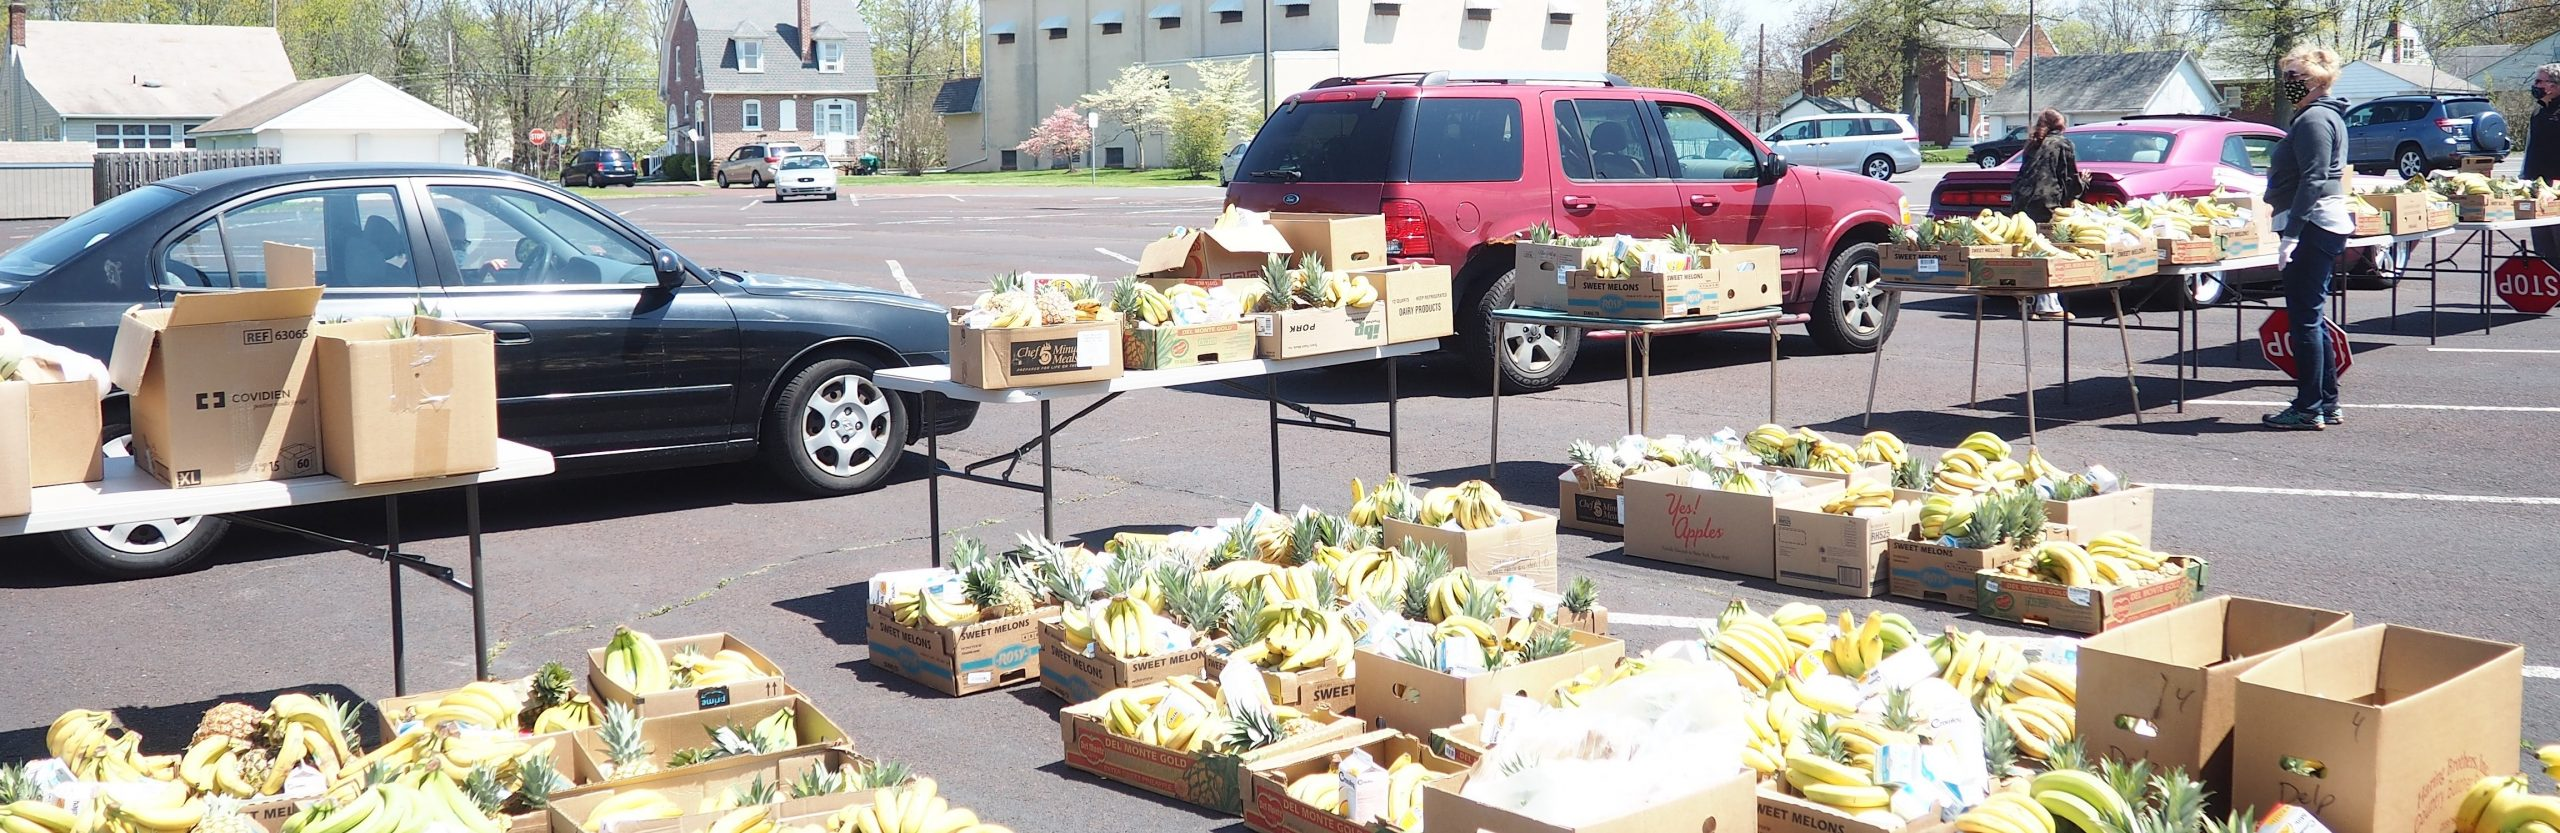 Charitable Farmers Market to Feed the Hungry - Philabundance